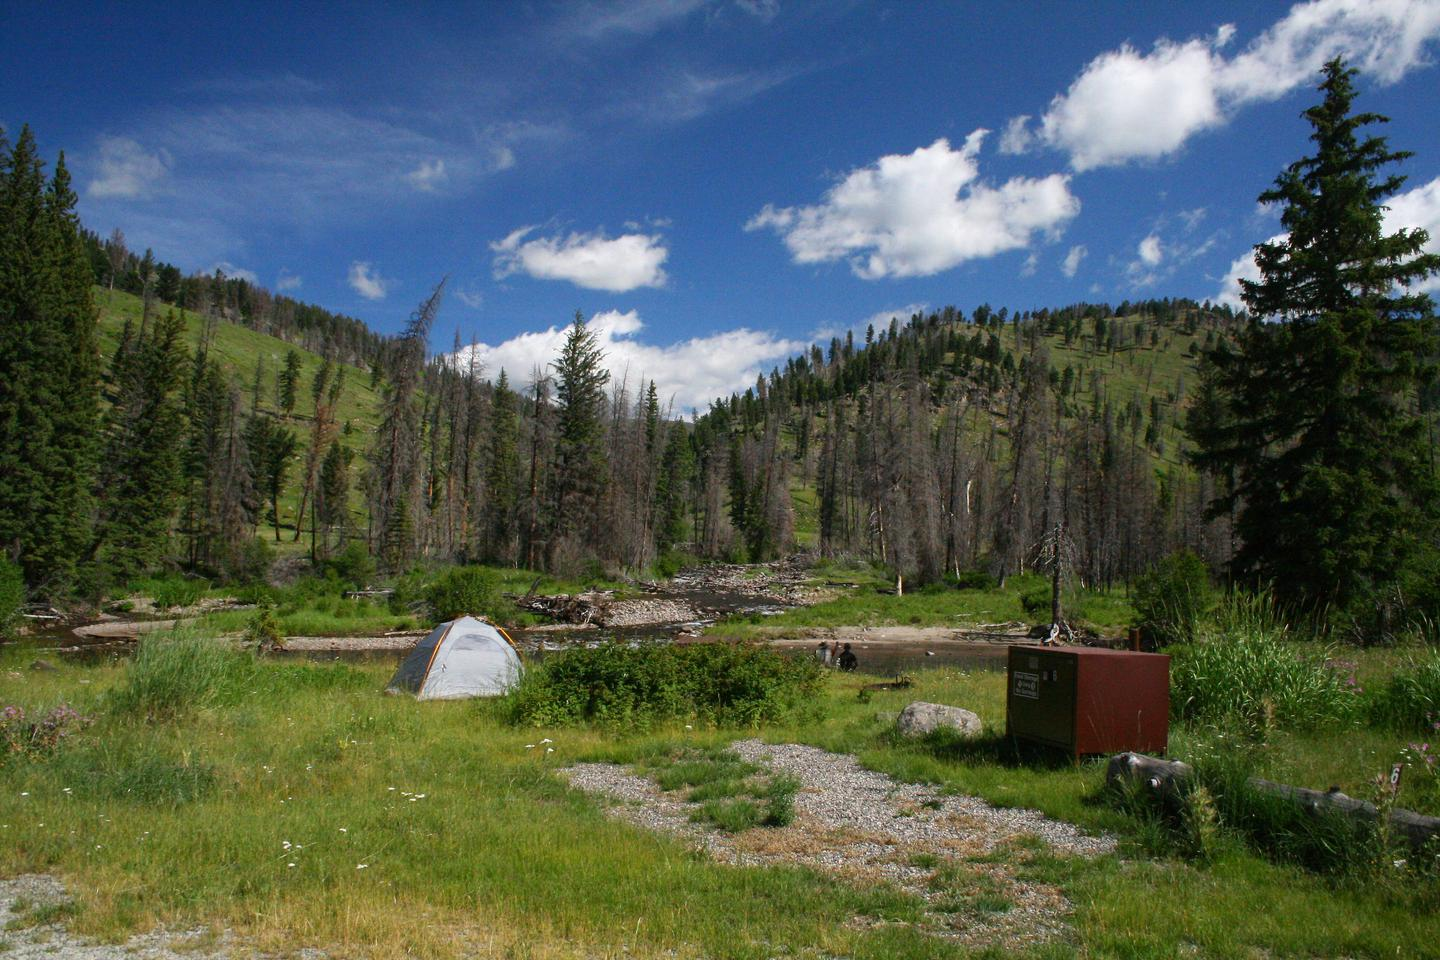 Slough Creek Campground site #6